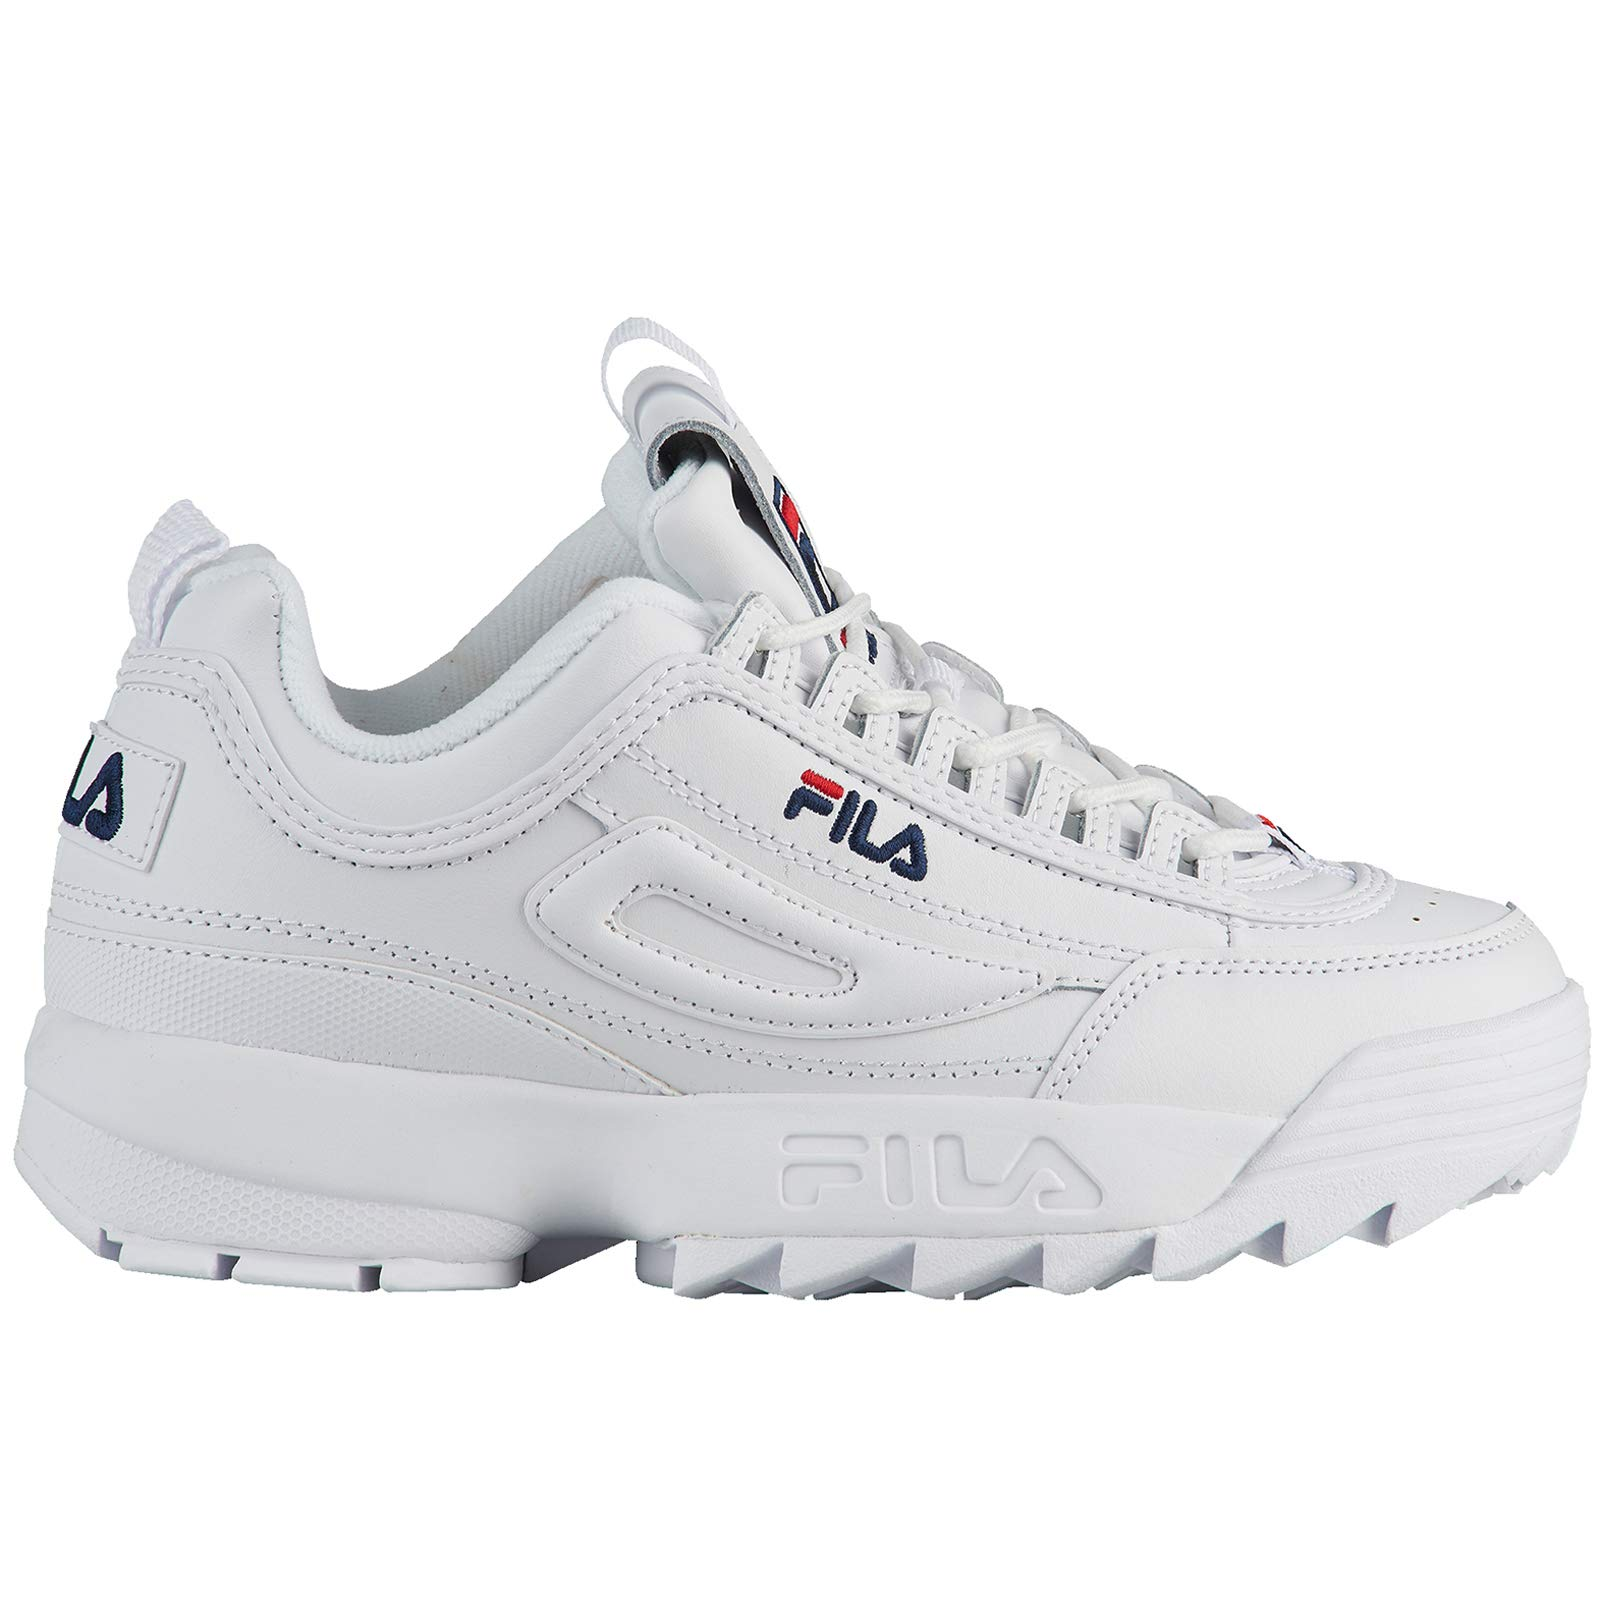 e8525bac7bc7 Fila Youth Disruptor II Synthetic White Peacoat Red Trainers 4.5 US